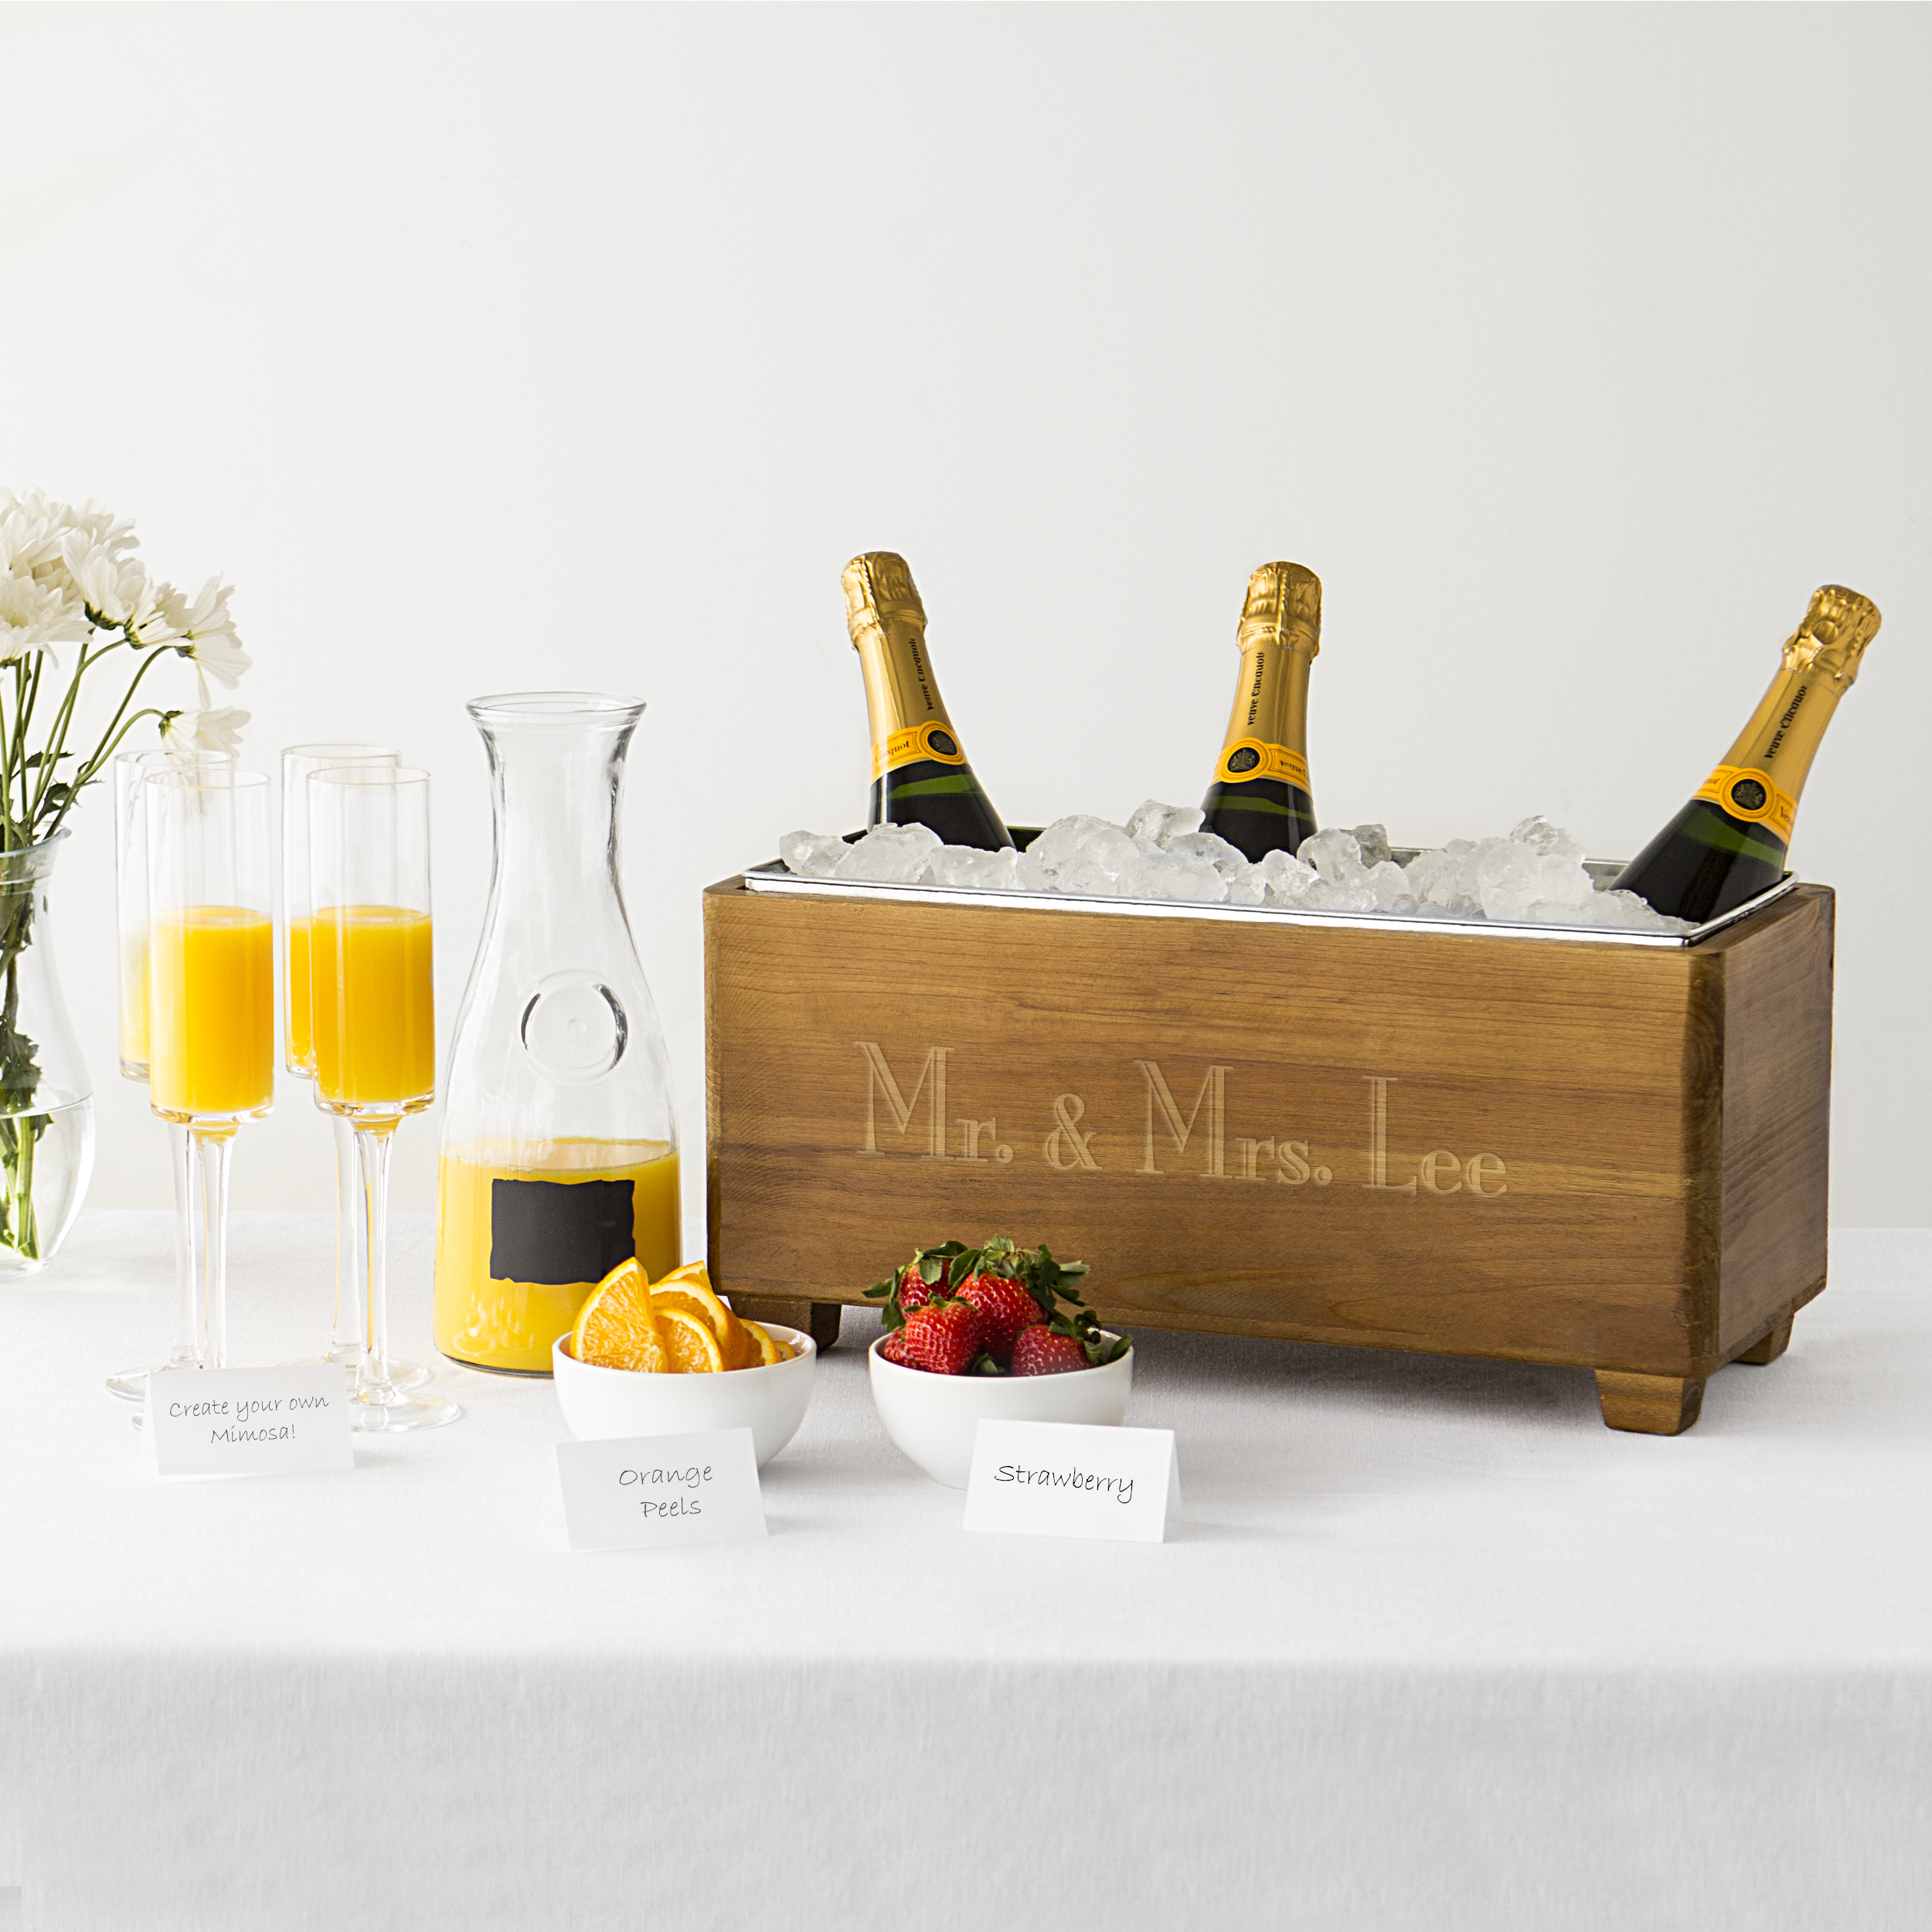 Personalized Wood Beverage Chiller Trough